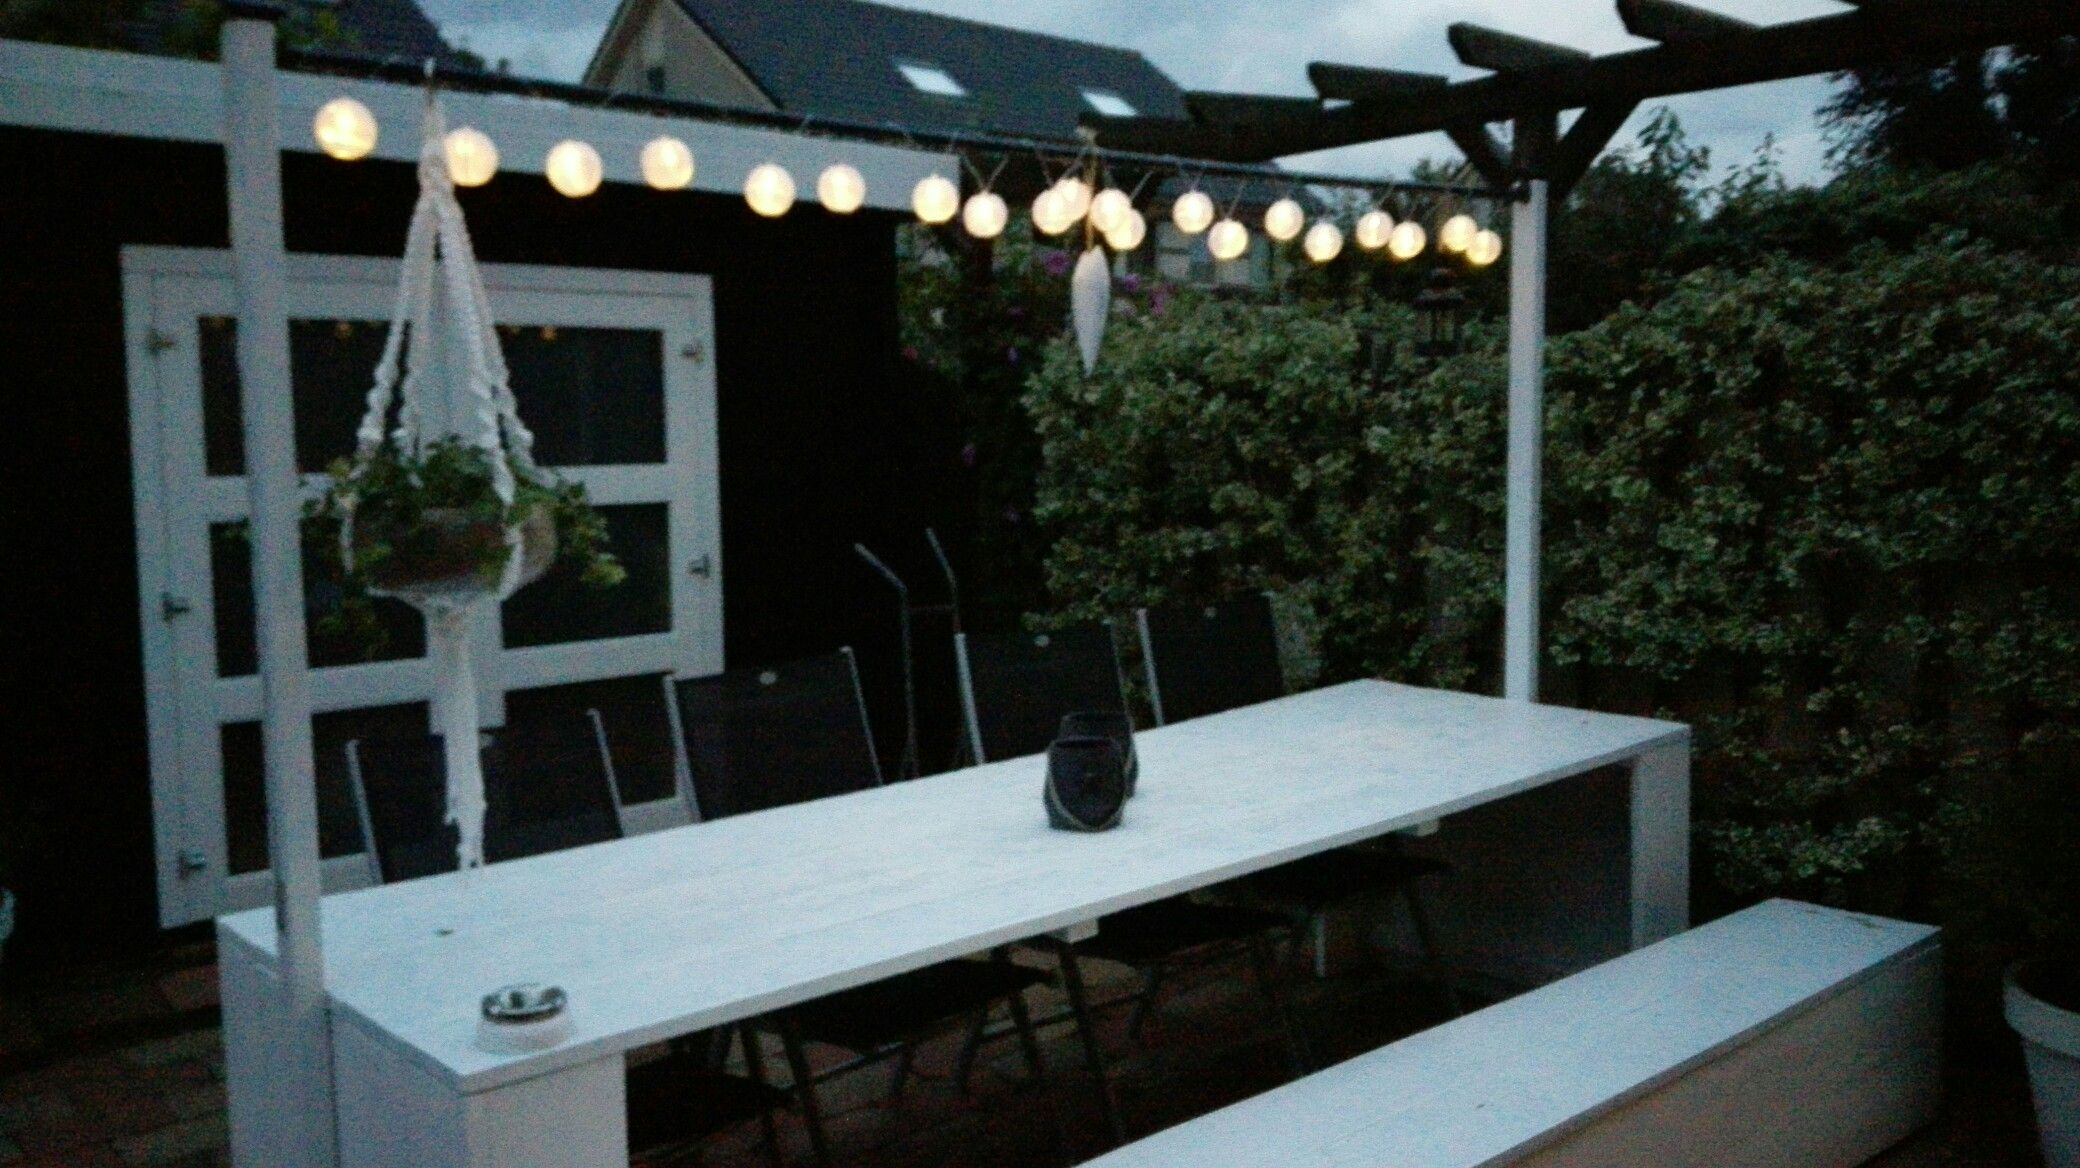 Pin pergola lighting on pinterest - Explore These Ideas And More